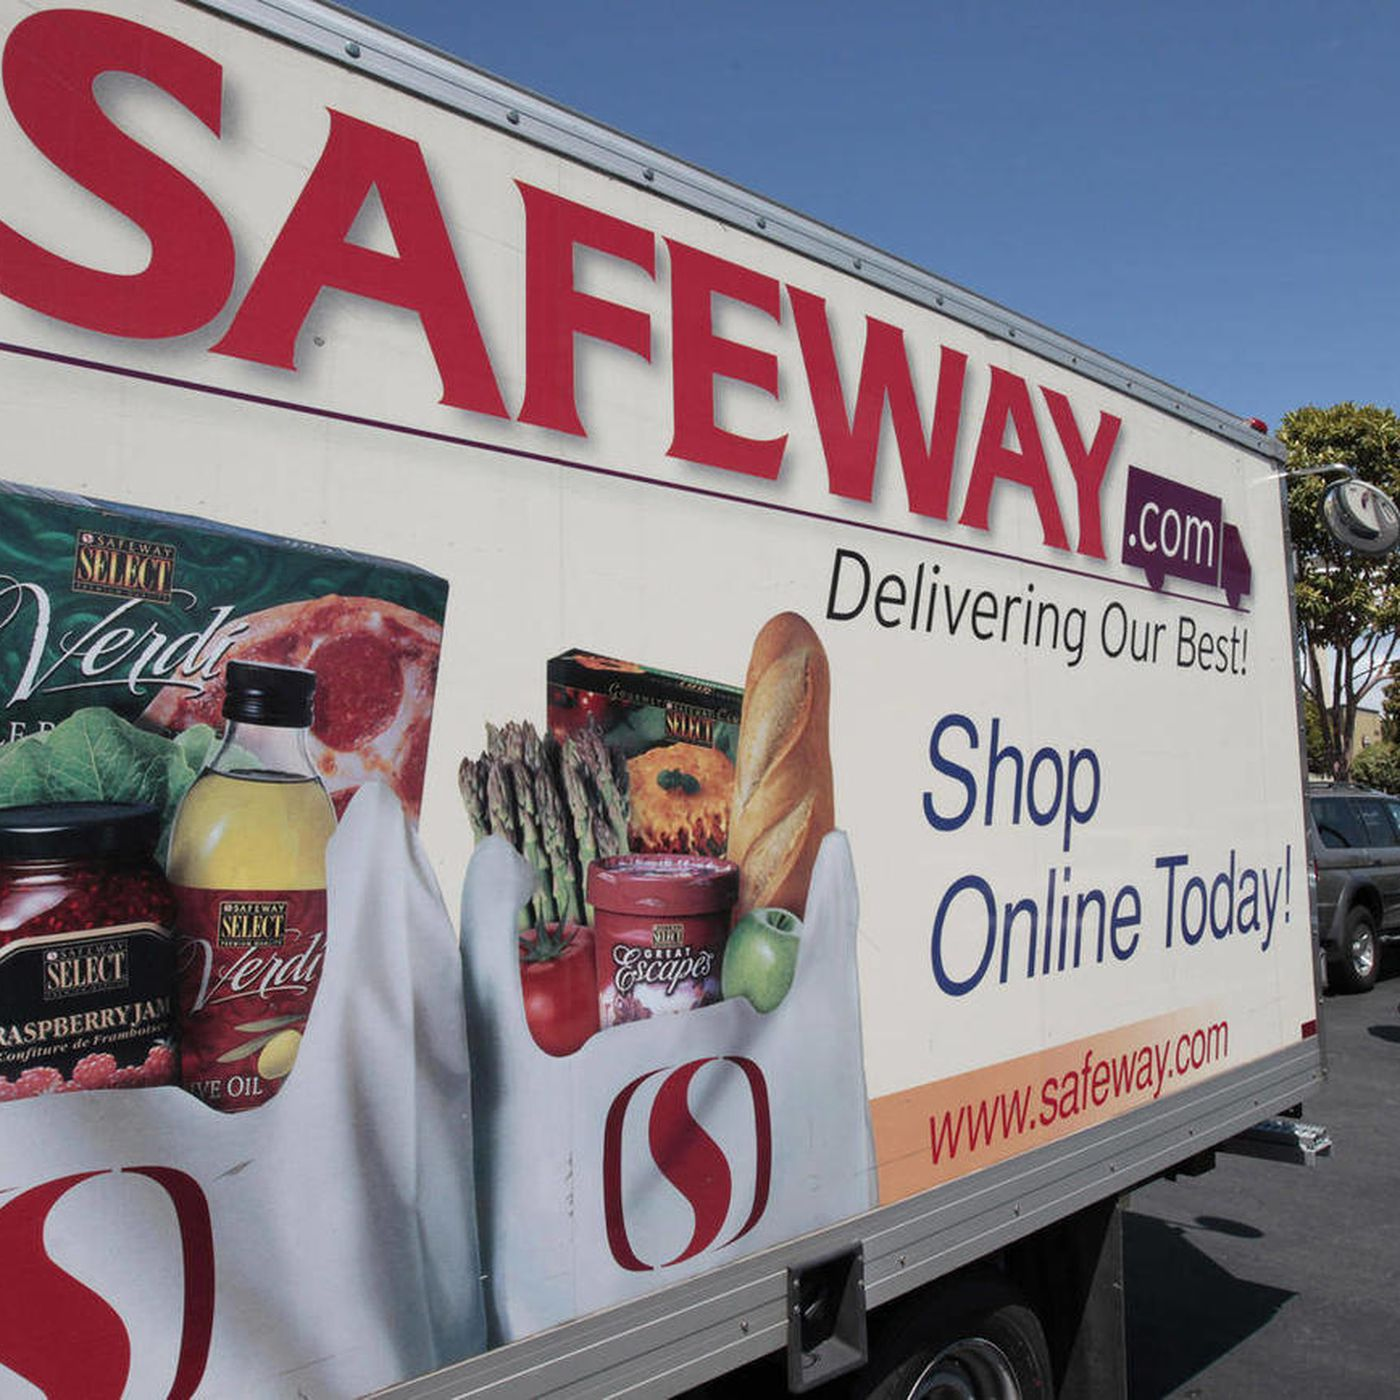 Safeway bets that loyalty program will pay off - Deseret News